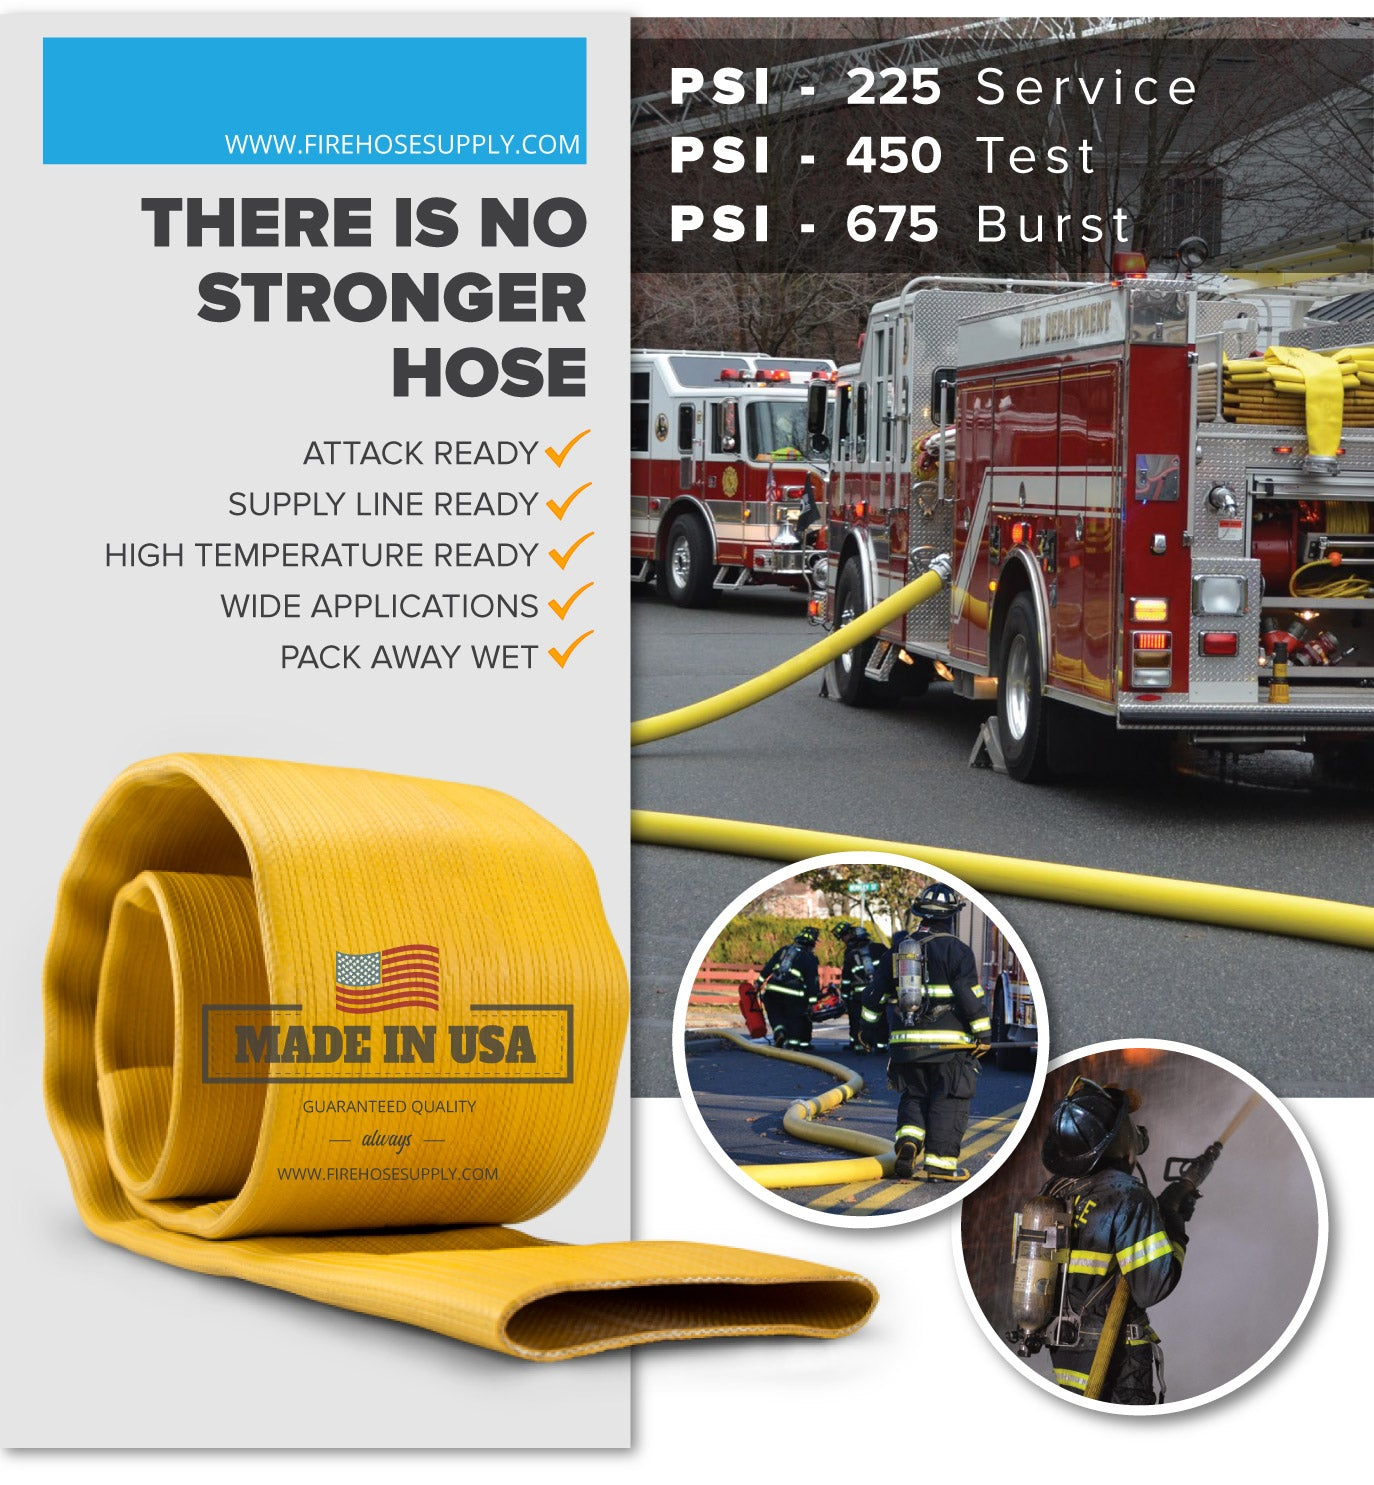 5 Inch Rubber Fire Hose Material Only Supply Ready Firefighter Yellow 450 PSI Test